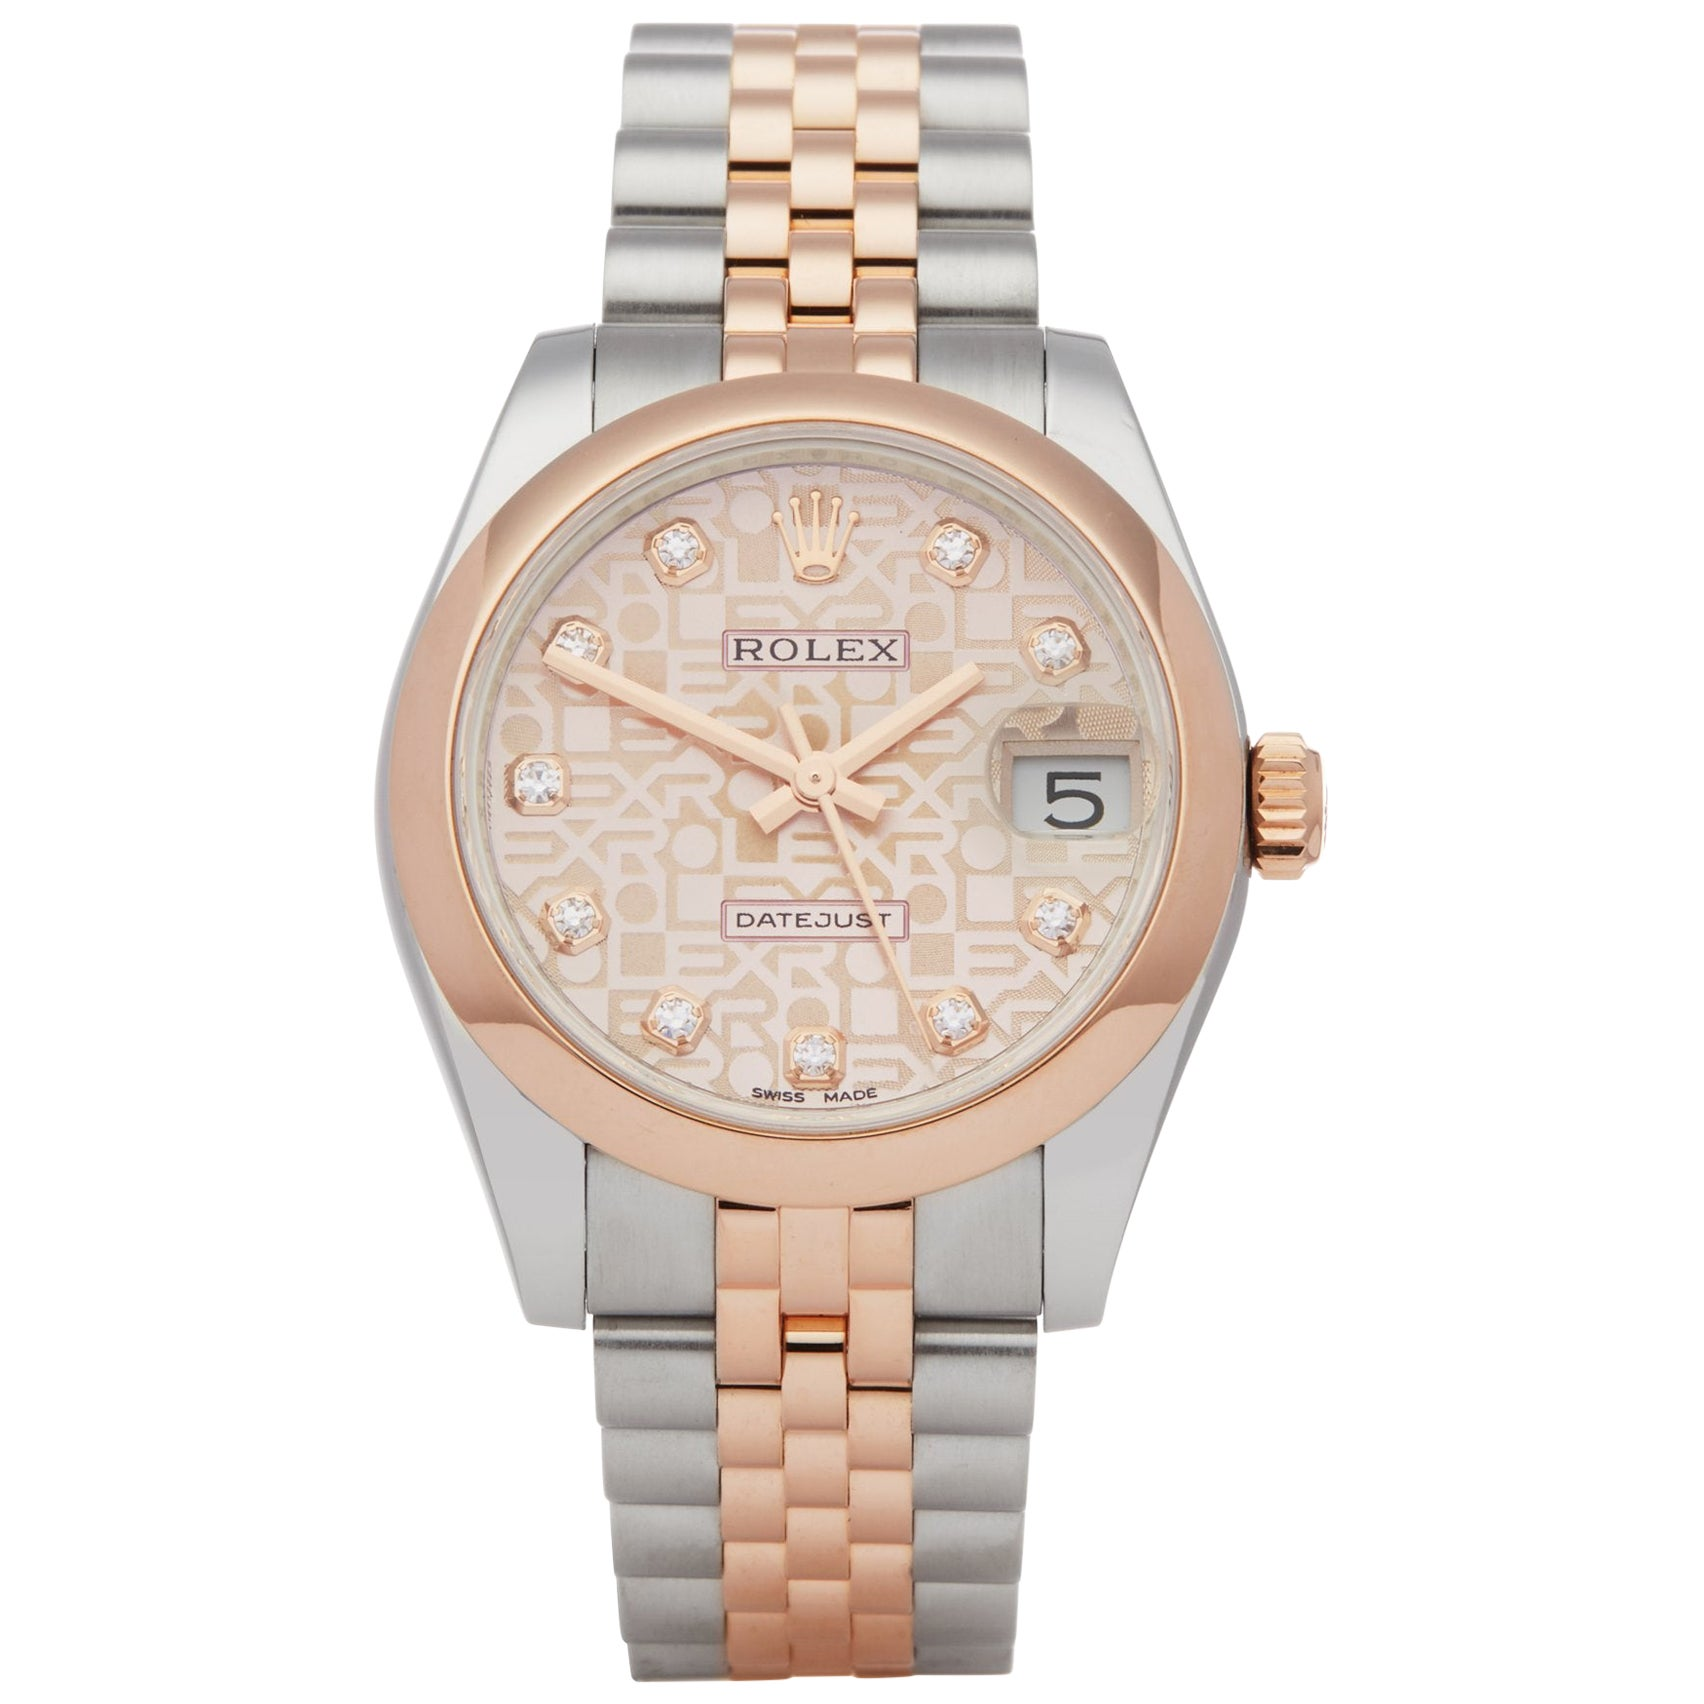 Rolex Datejust 31 178241 Ladies Stainless Steel & Rose Gold Jubilee Diamond Dial